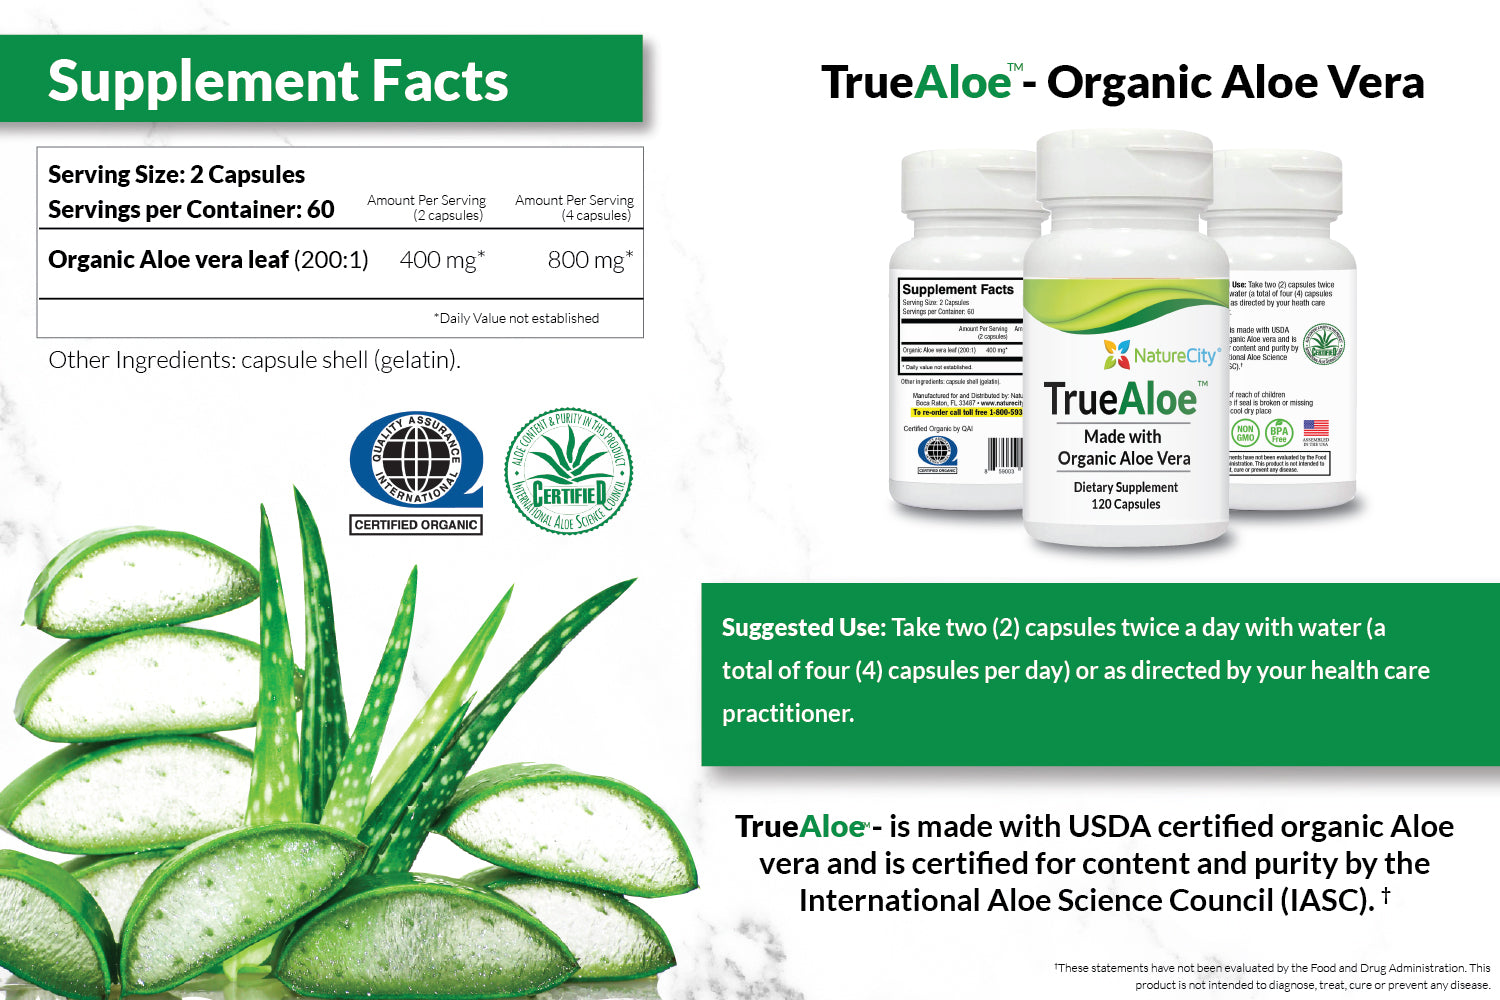 TrueAloe Organic Aloe Vera Supplement Facts and Suggested Use